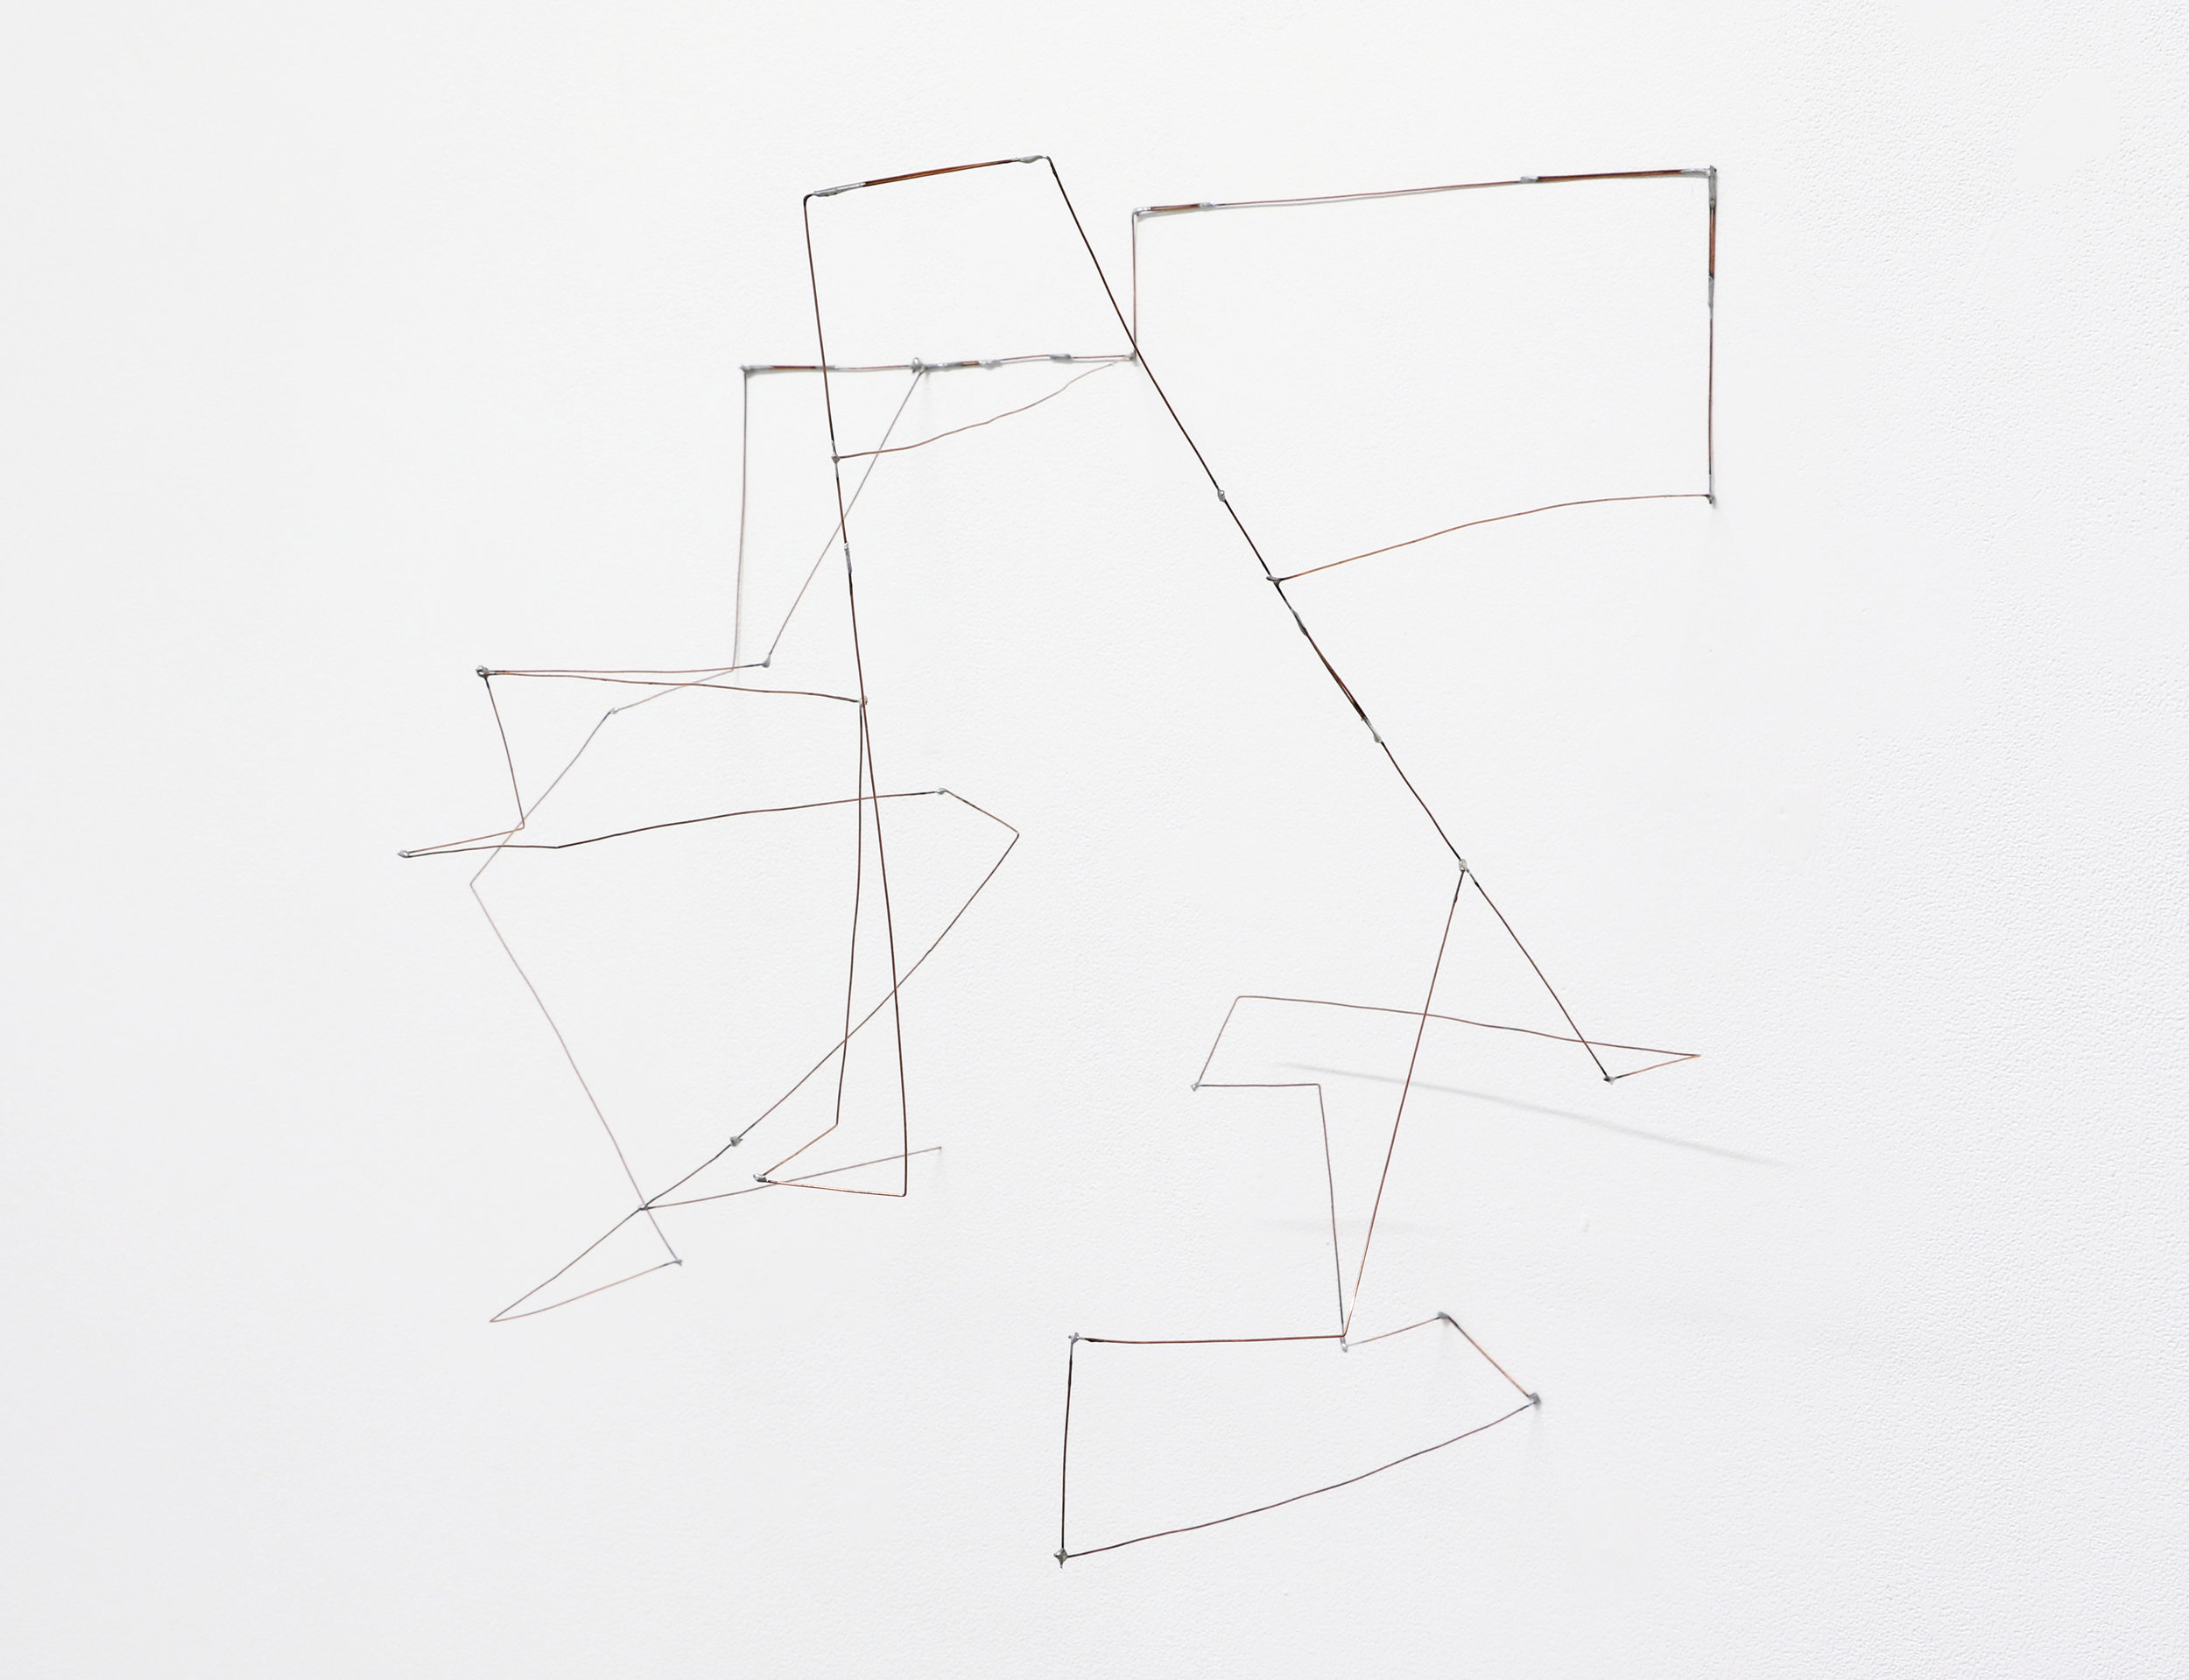 """Scielo , 2019, soldered copper-coated steel wire, 17"""" x 19"""" x 13"""""""